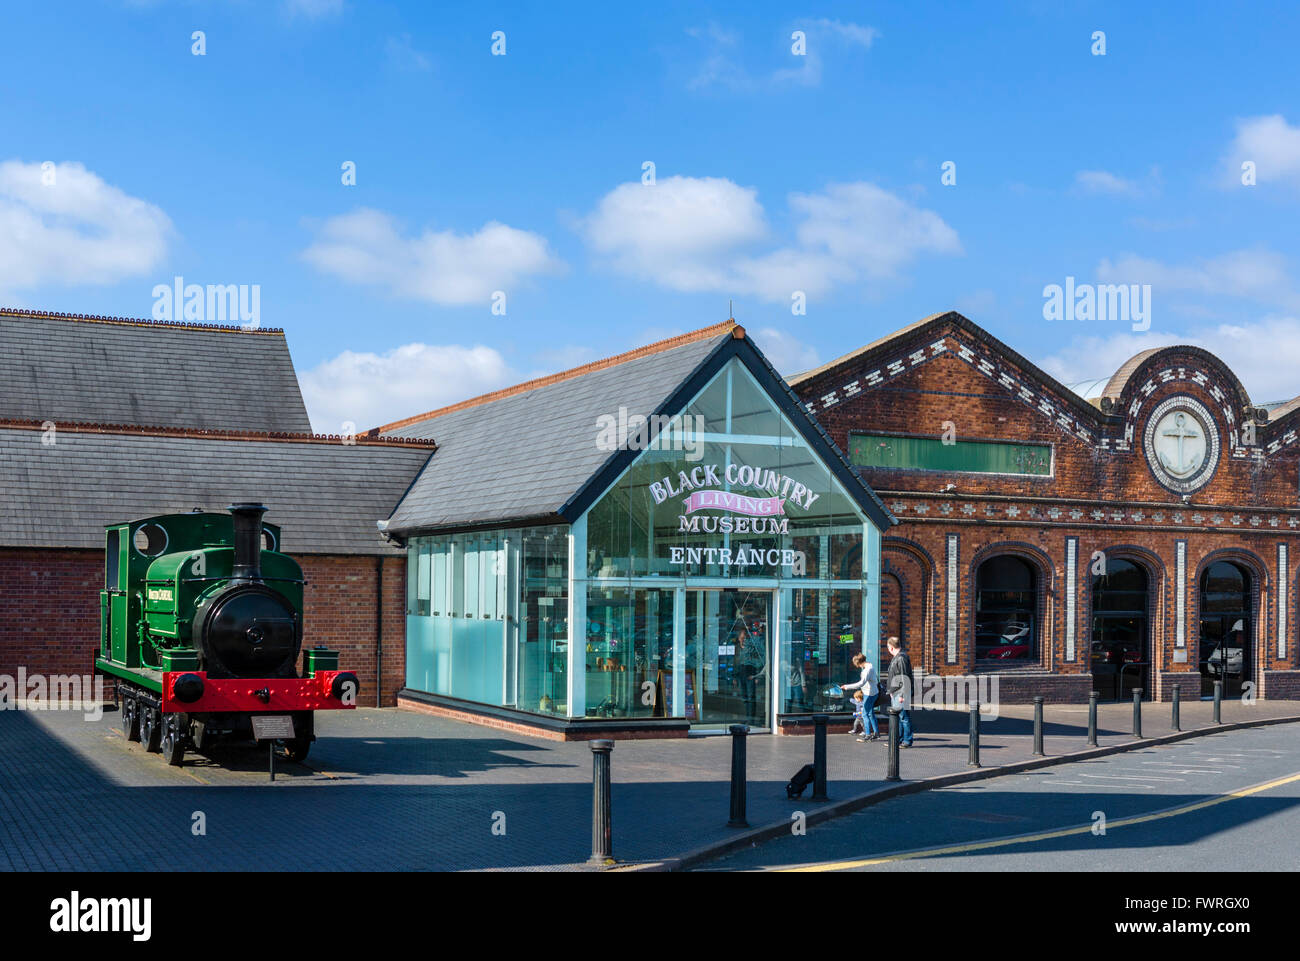 Entrance to the Black Country Living Museum, Dudley, West Midlands, UK - Stock Image